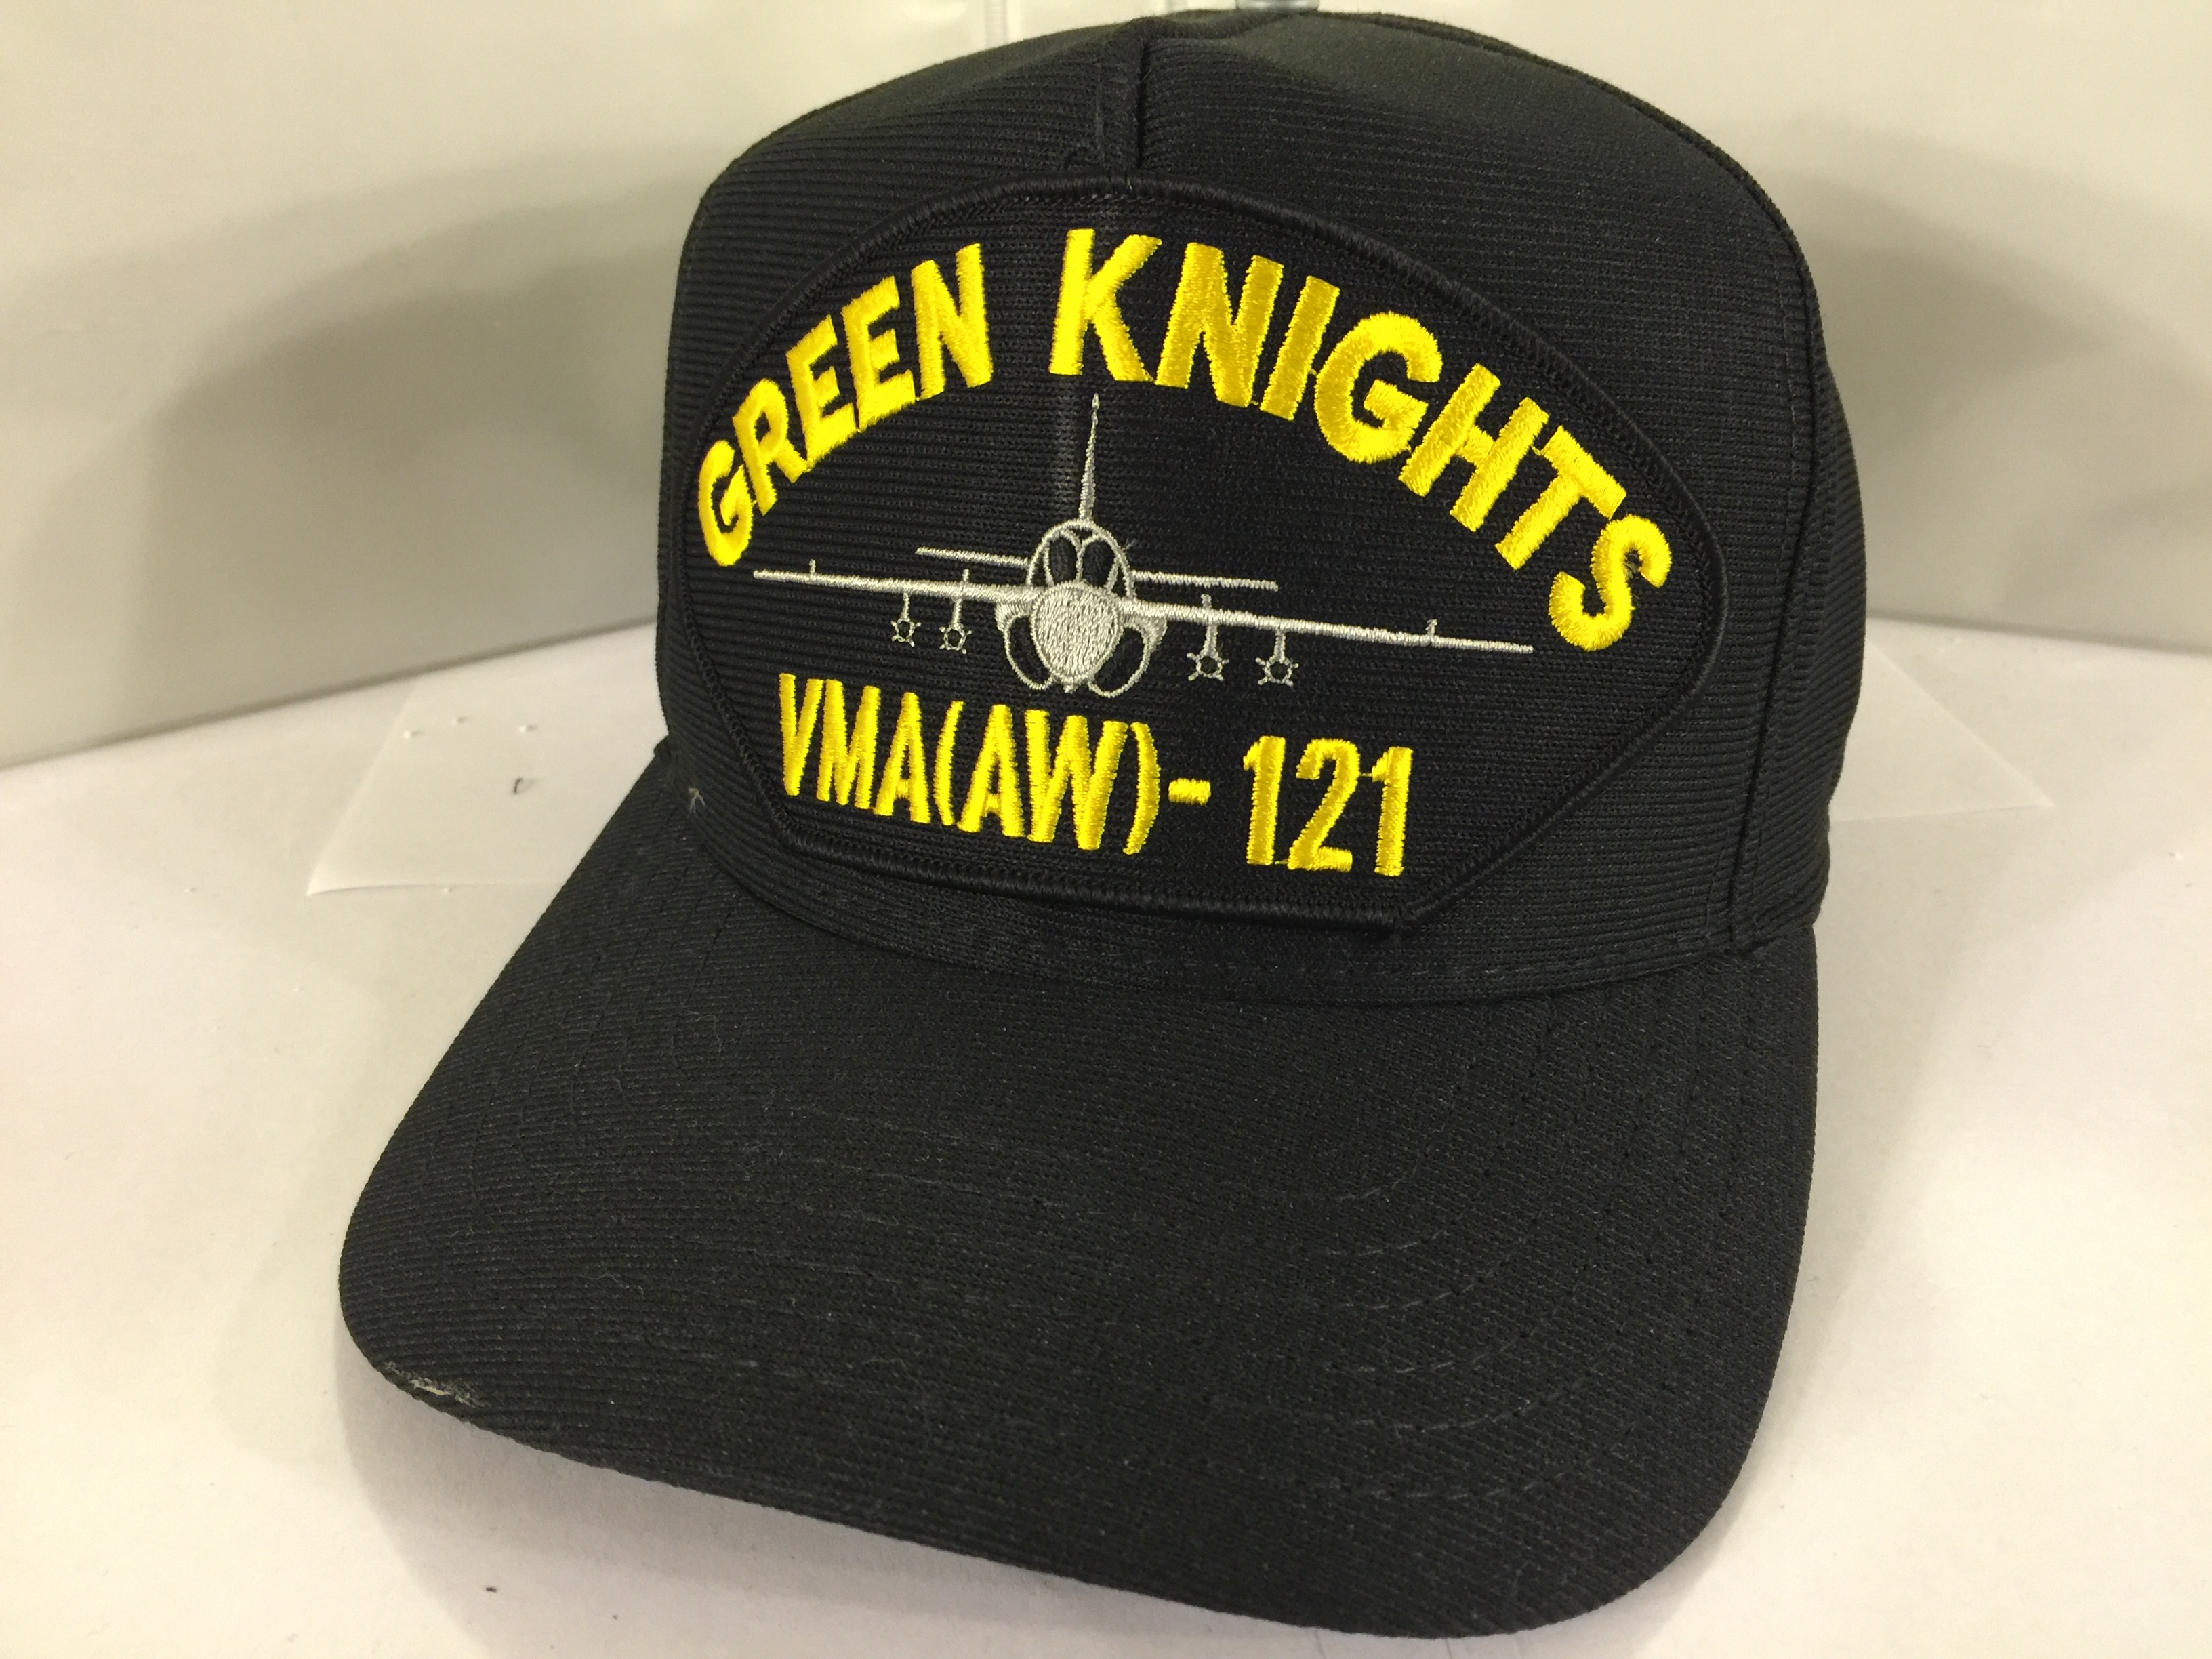 USMC VMA(AW)-121 GREEN KNIGHTS Ballcap (Black)